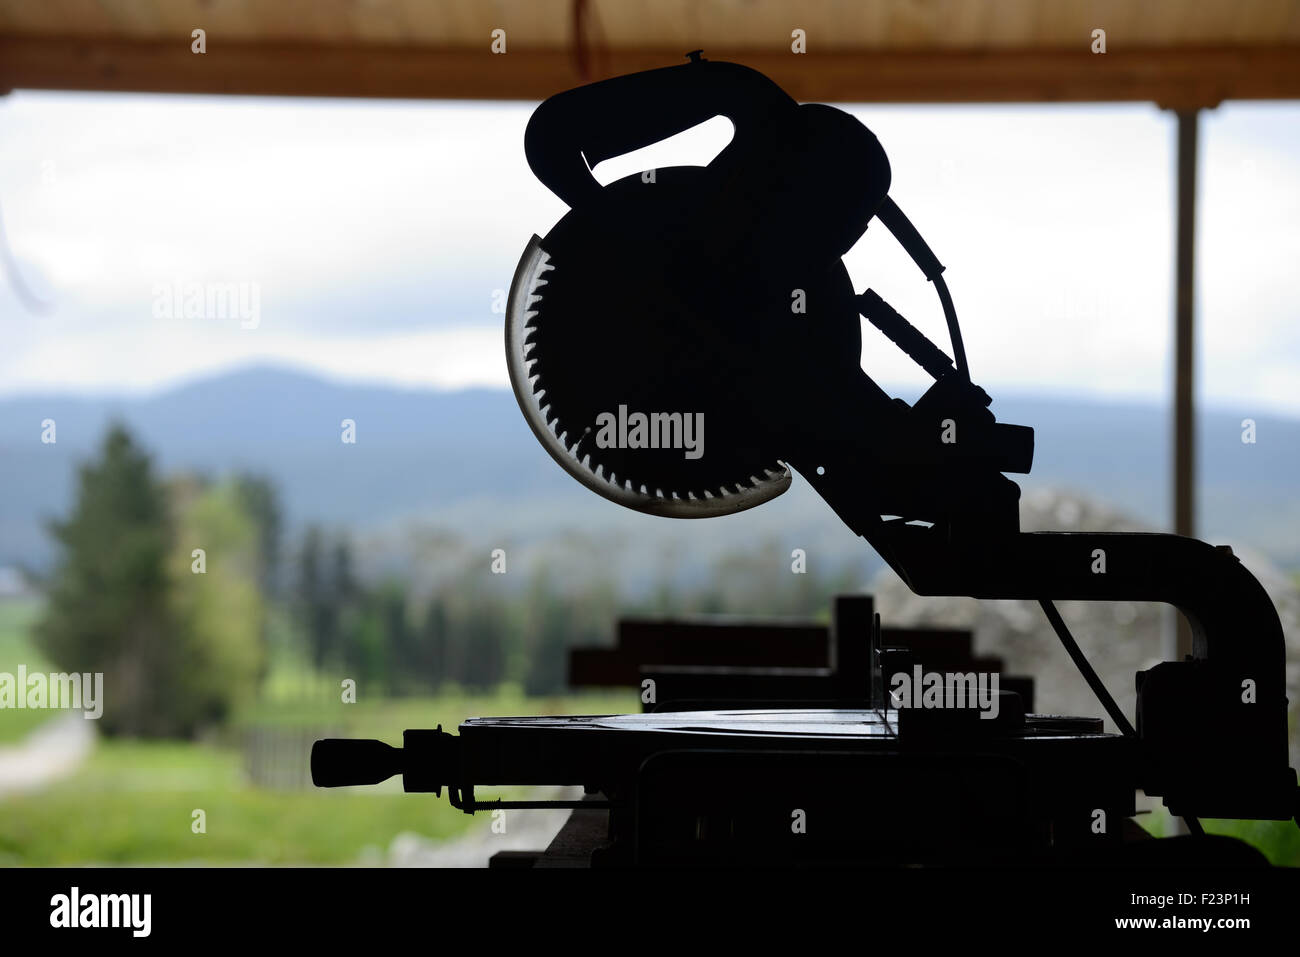 Silhouette of saw bench on a construction site - Stock Image